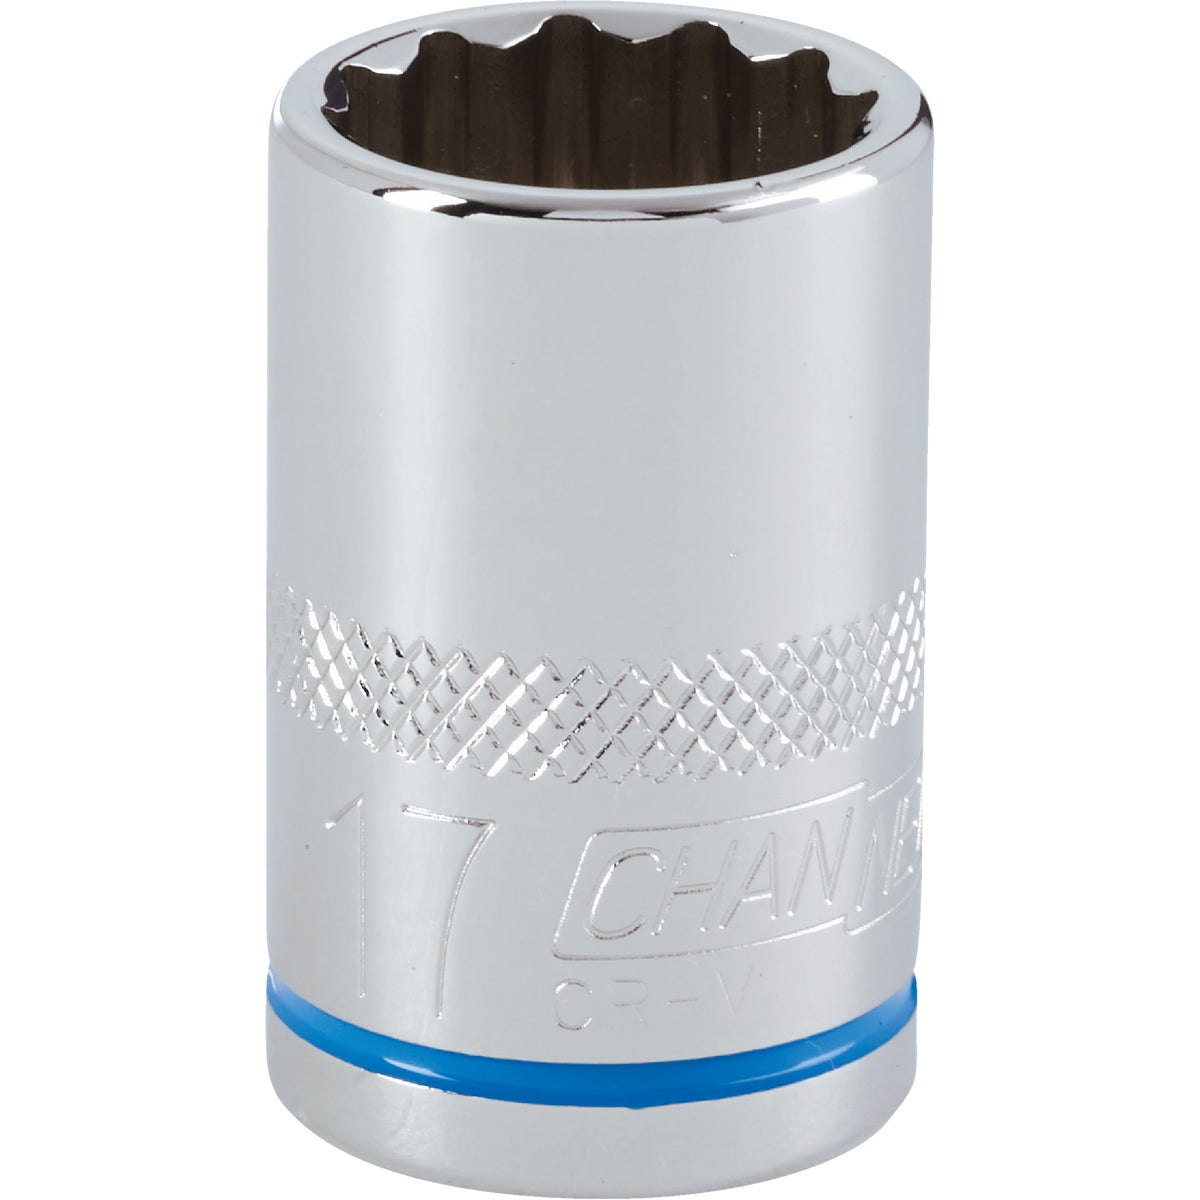 17MM 1/2 DRIVE SOCKET - 397679 by Danaher Tool Ltd